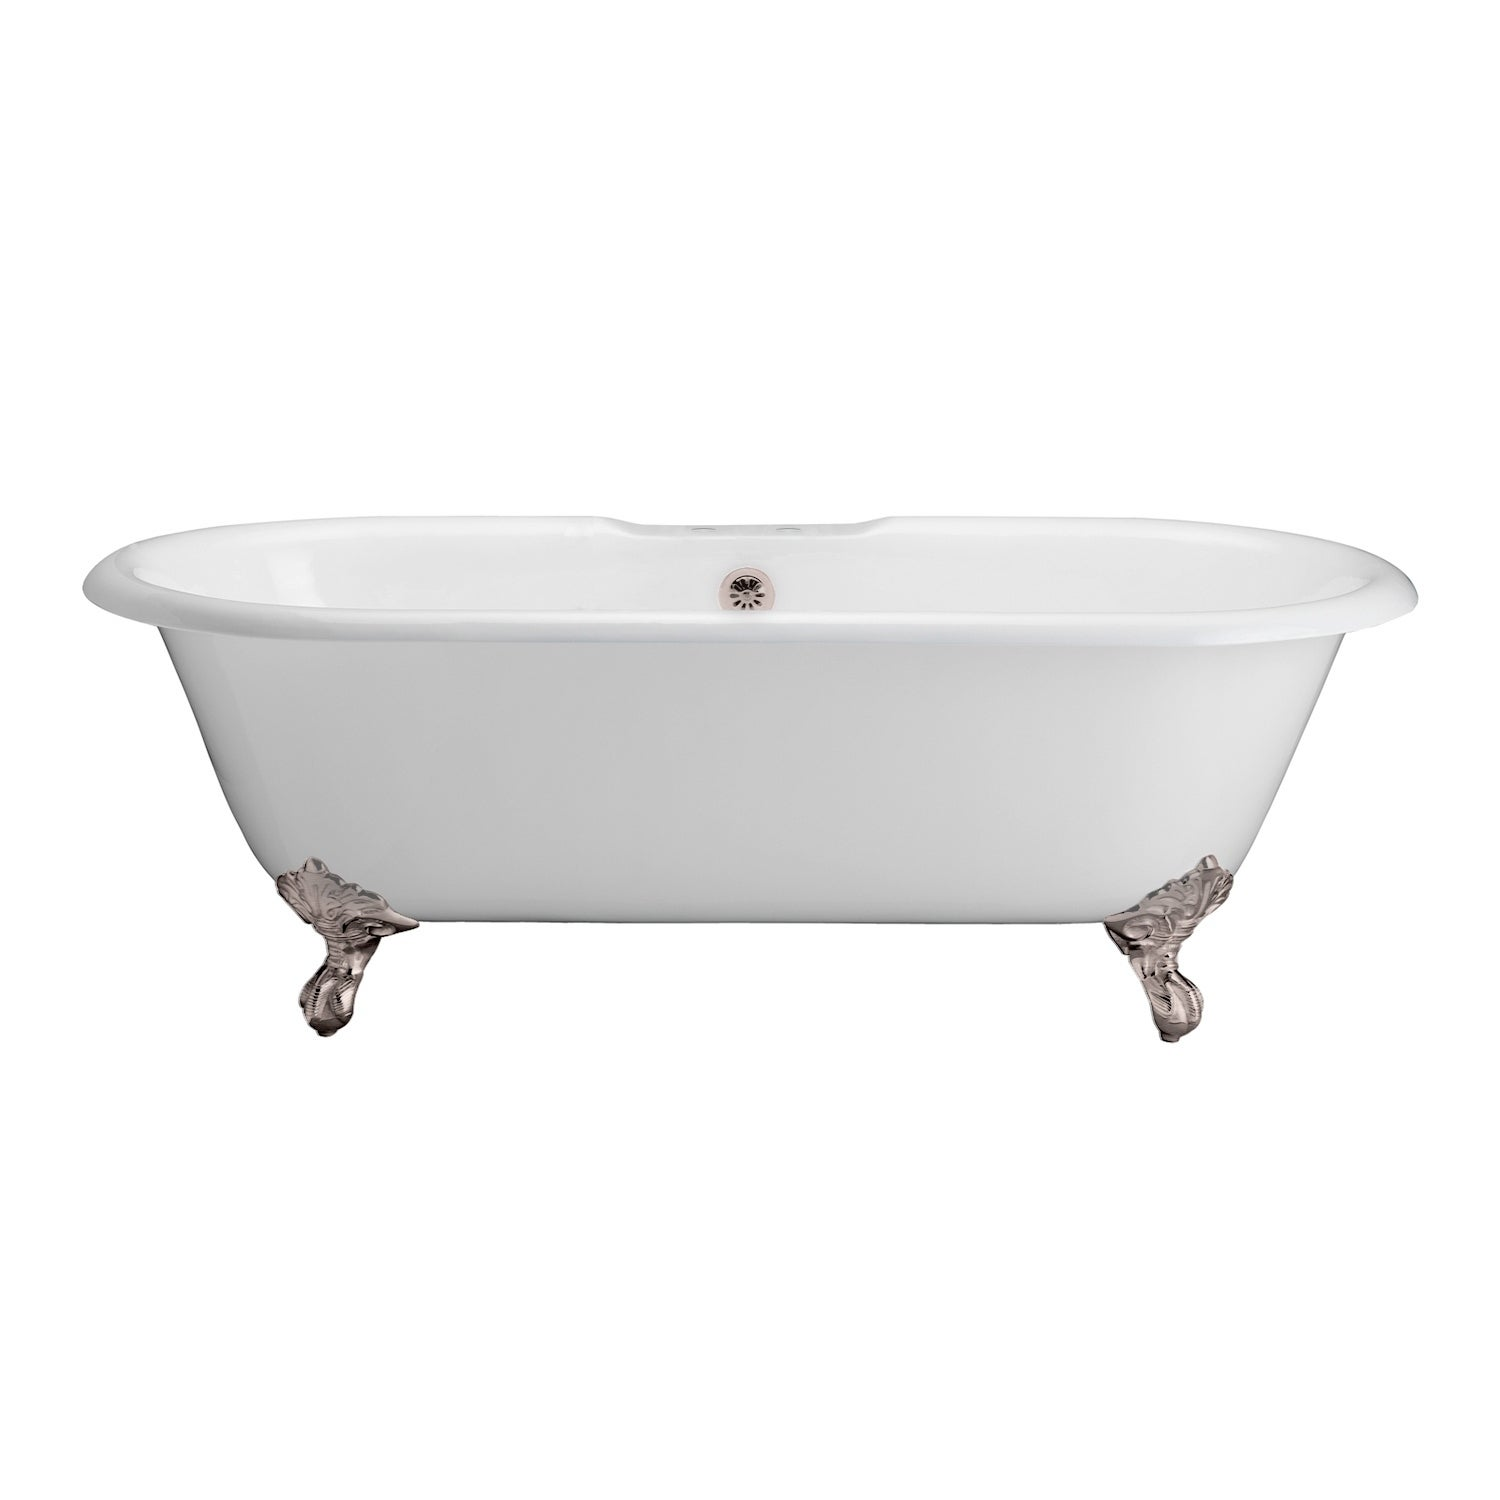 Shop Cahaba Classics 67-inch Double Roll Top Cast Iron Tub - Free ...